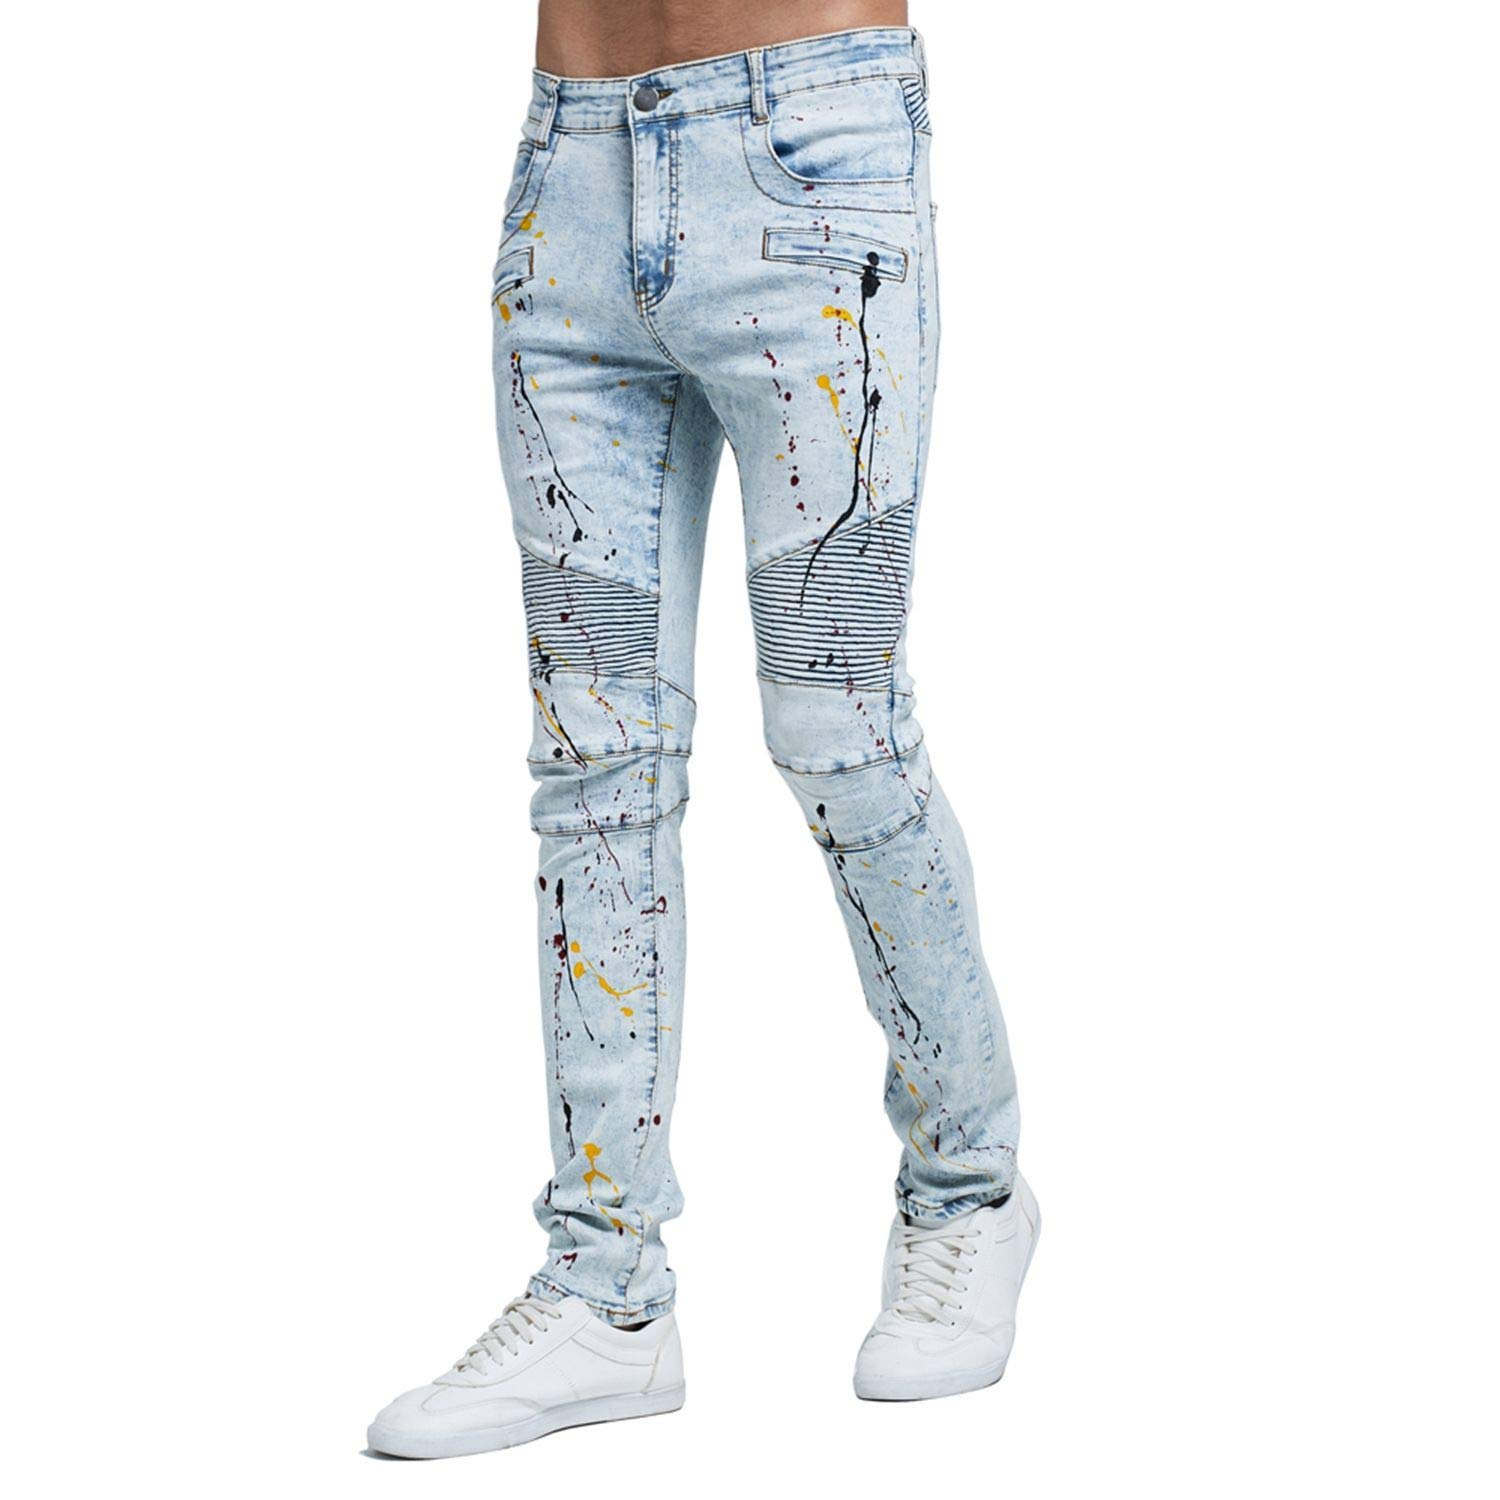 Frozac 2019 Men Fashion Biker Jeans Strech Light Blue Skinny Jeans H0114